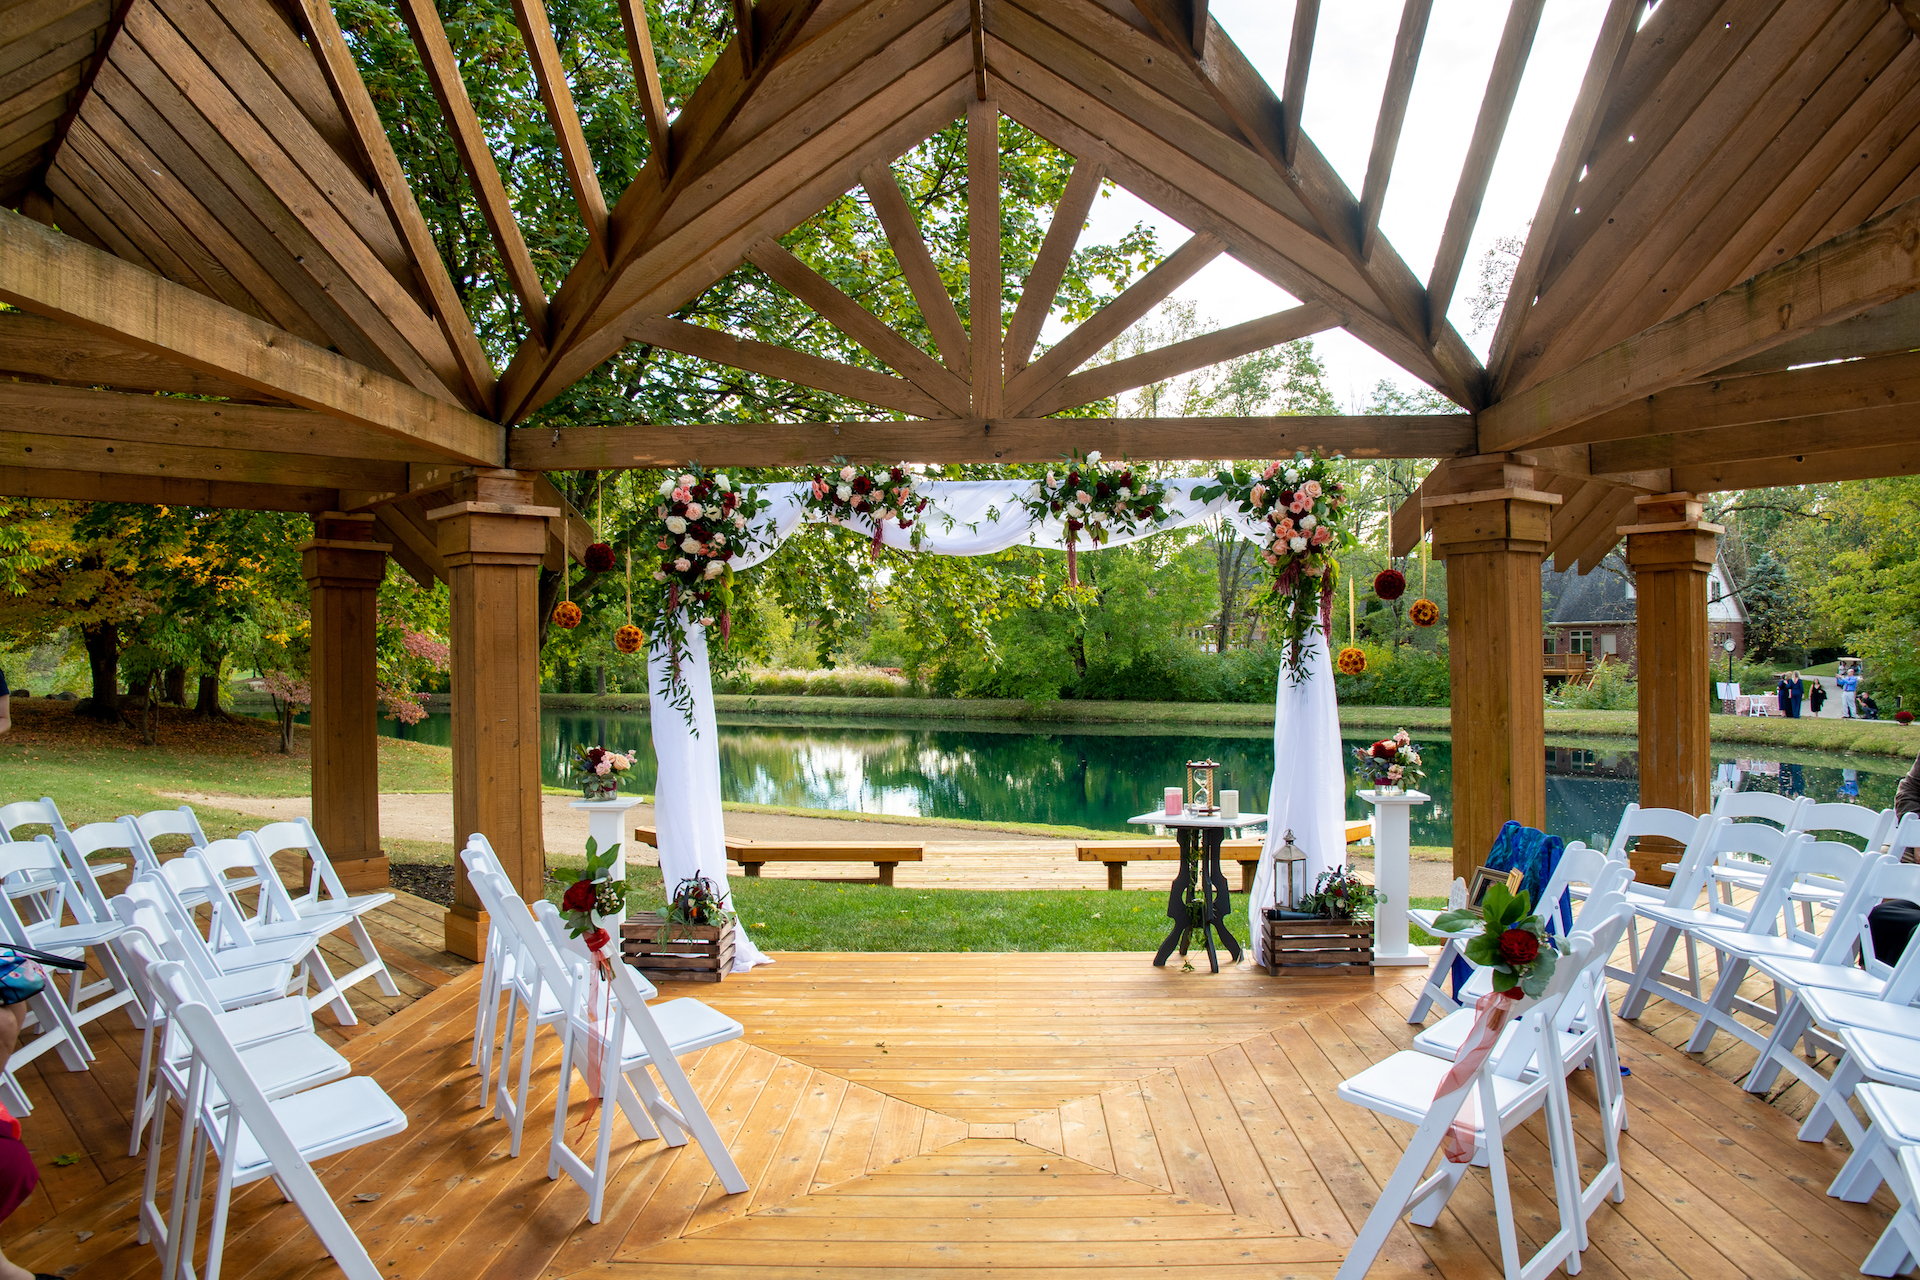 The Balmoral House Pergola ceremony